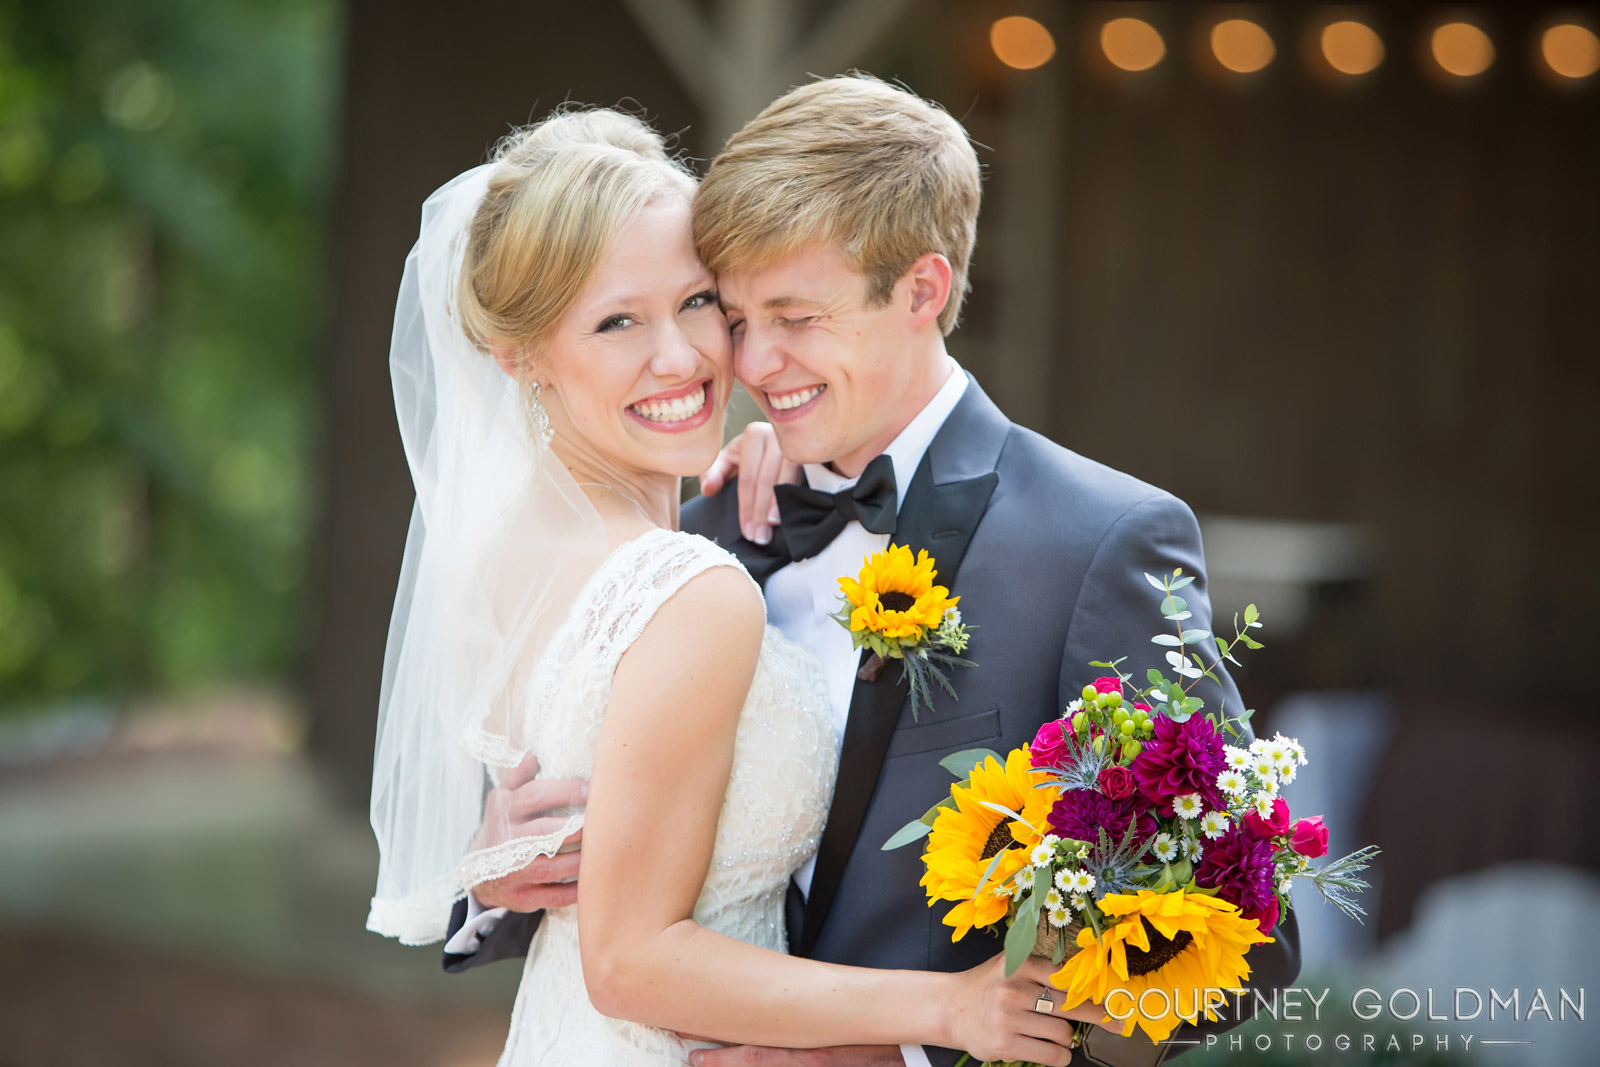 Atlanta-Wedding-Photography-by-Courtney-Goldman-33.jpg